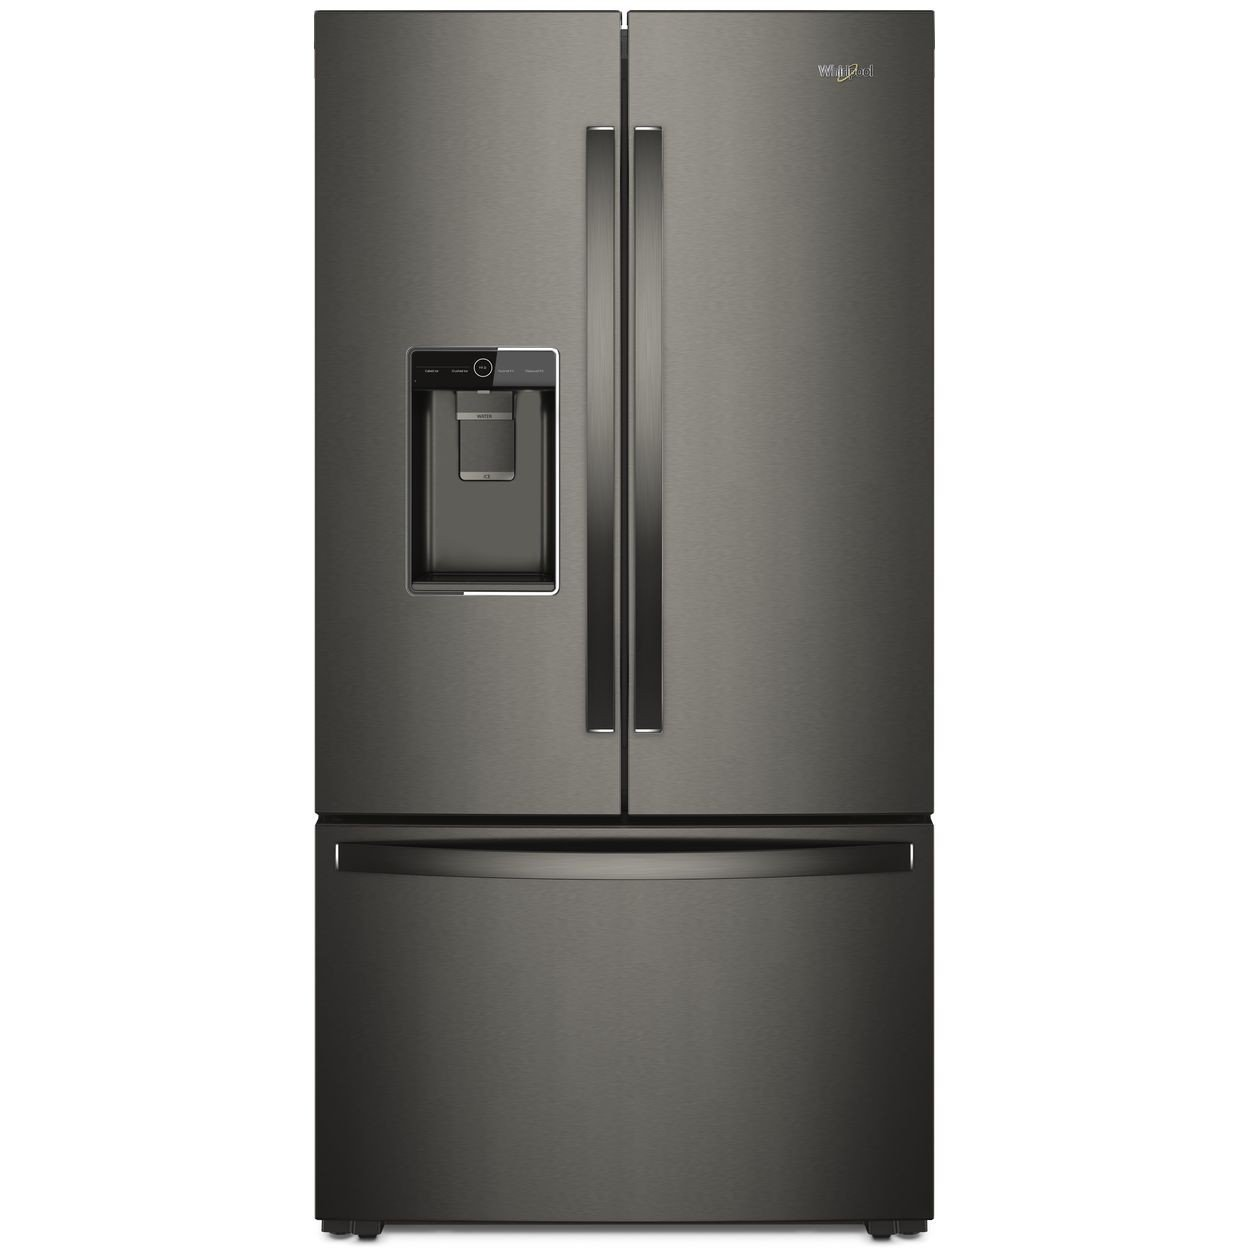 Whirlpool French Door Refrigerator 36 Inch Black